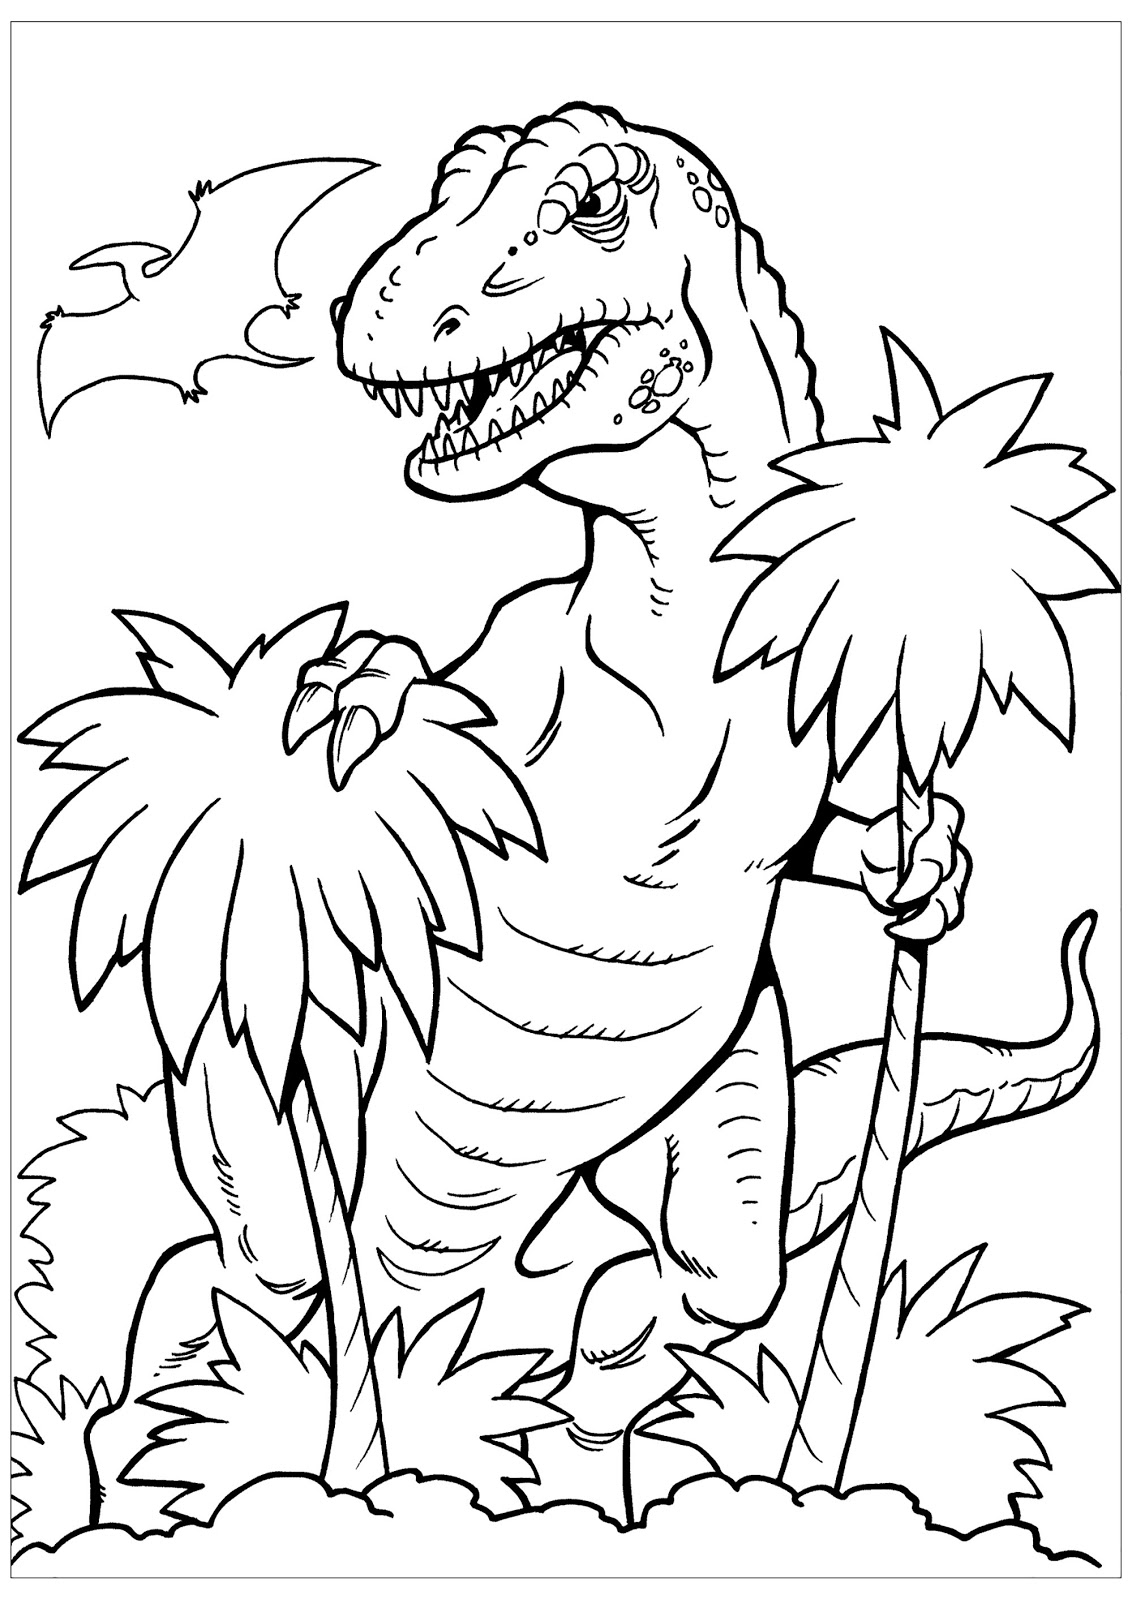 Dinosaurs coloring pages 49